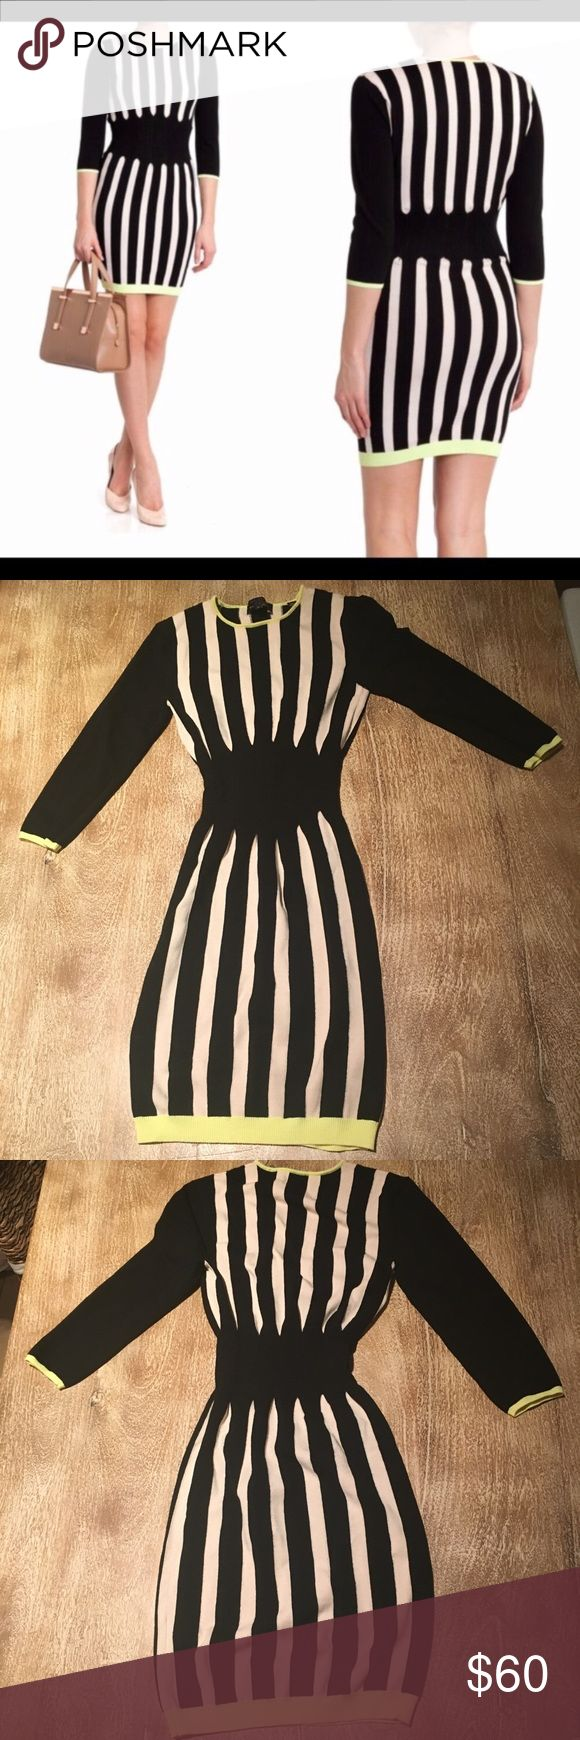 "Ted Baker ""Merica"" Bodycon Striped Dress, size 0 Ted Baker ""Merica"" Striped Bodycon dress in Black and Ivory with contrasting color hem/edging. Size 0. NWOT. Figure flattering. Three-quarter length sleeves. 75% viscose, 25% polyamide. Lots of stretch. Approx 33"" in length. No flaws. Ted Baker Dresses"